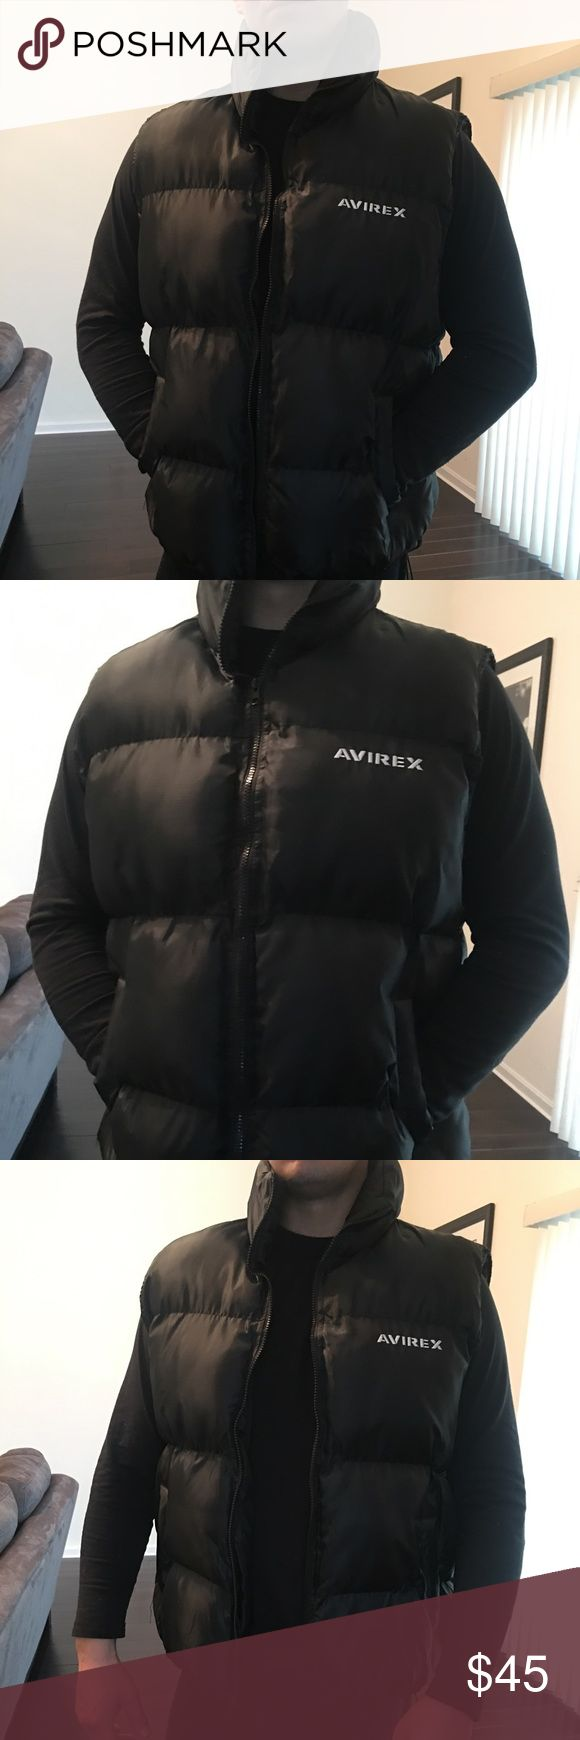 Men's Authentic Avirex Puffer Vest In like new condition! Used only once avirex Jackets & Coats Puffers